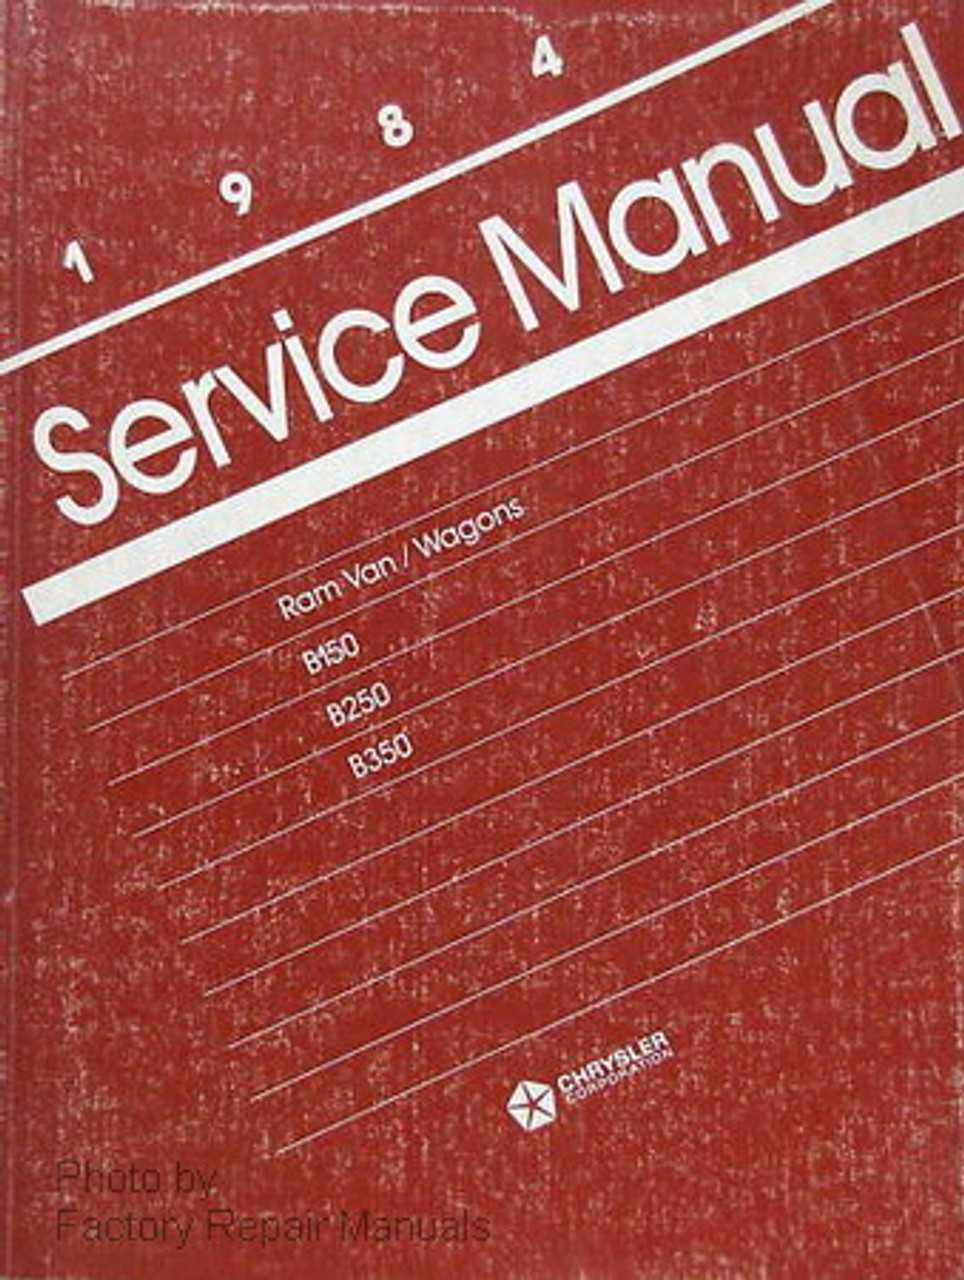 1984 Dodge Ram Van And Wagon Factory Service Manual B150